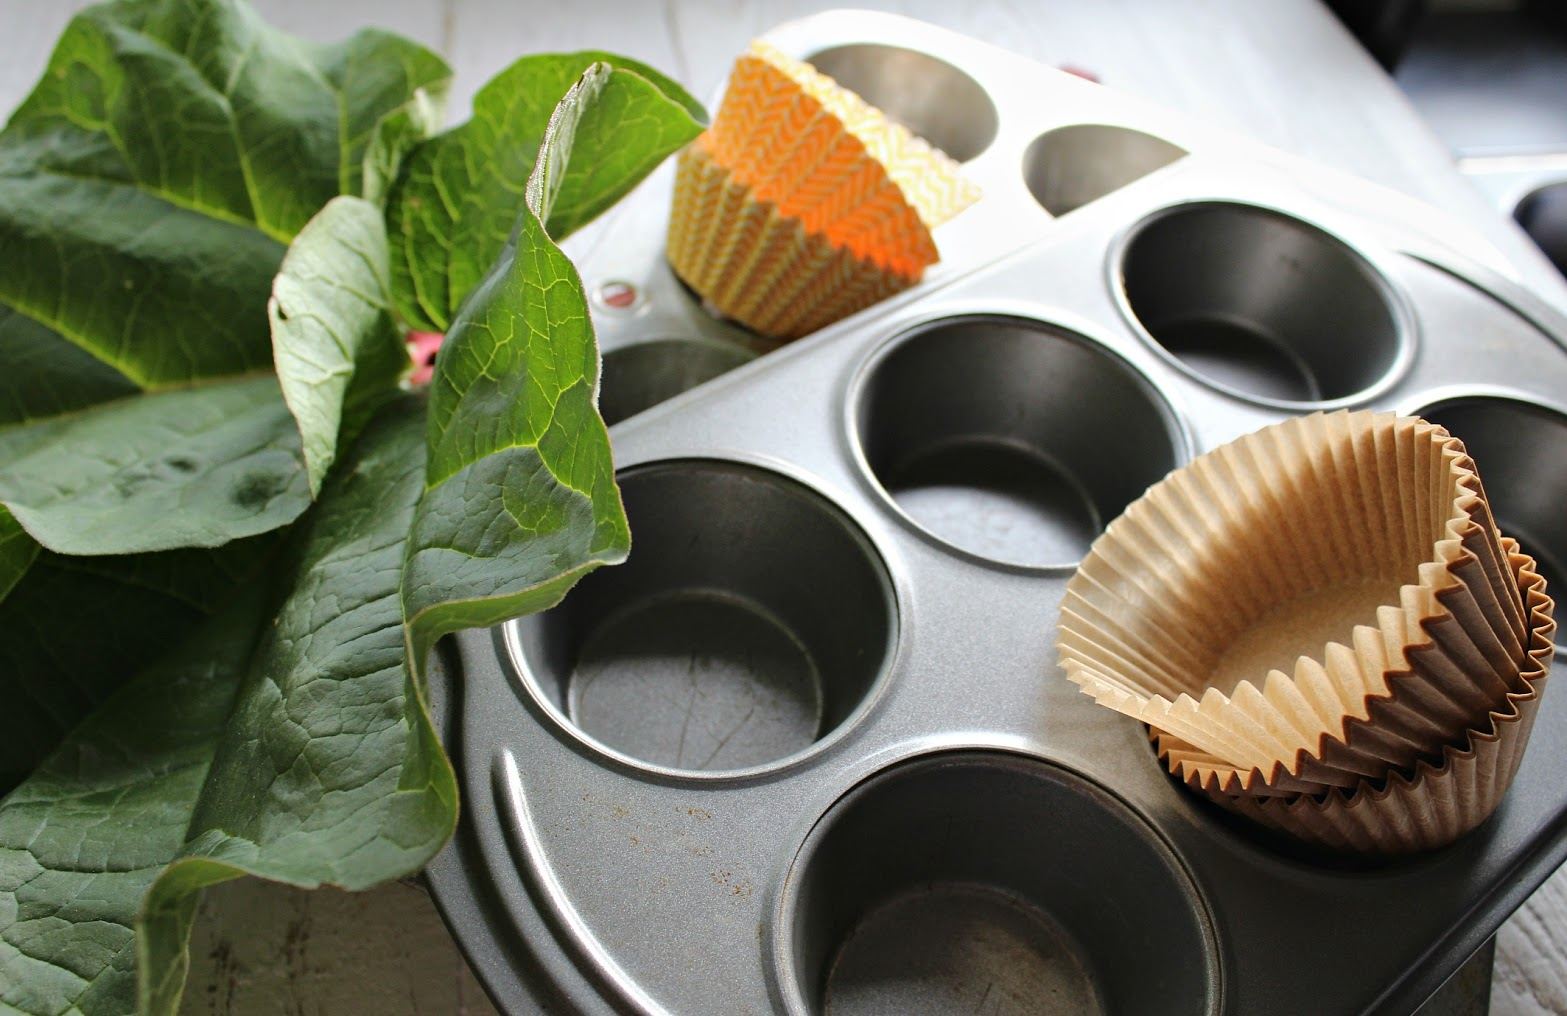 Divide the batter equally into muffin liners in muffin tins and bake.